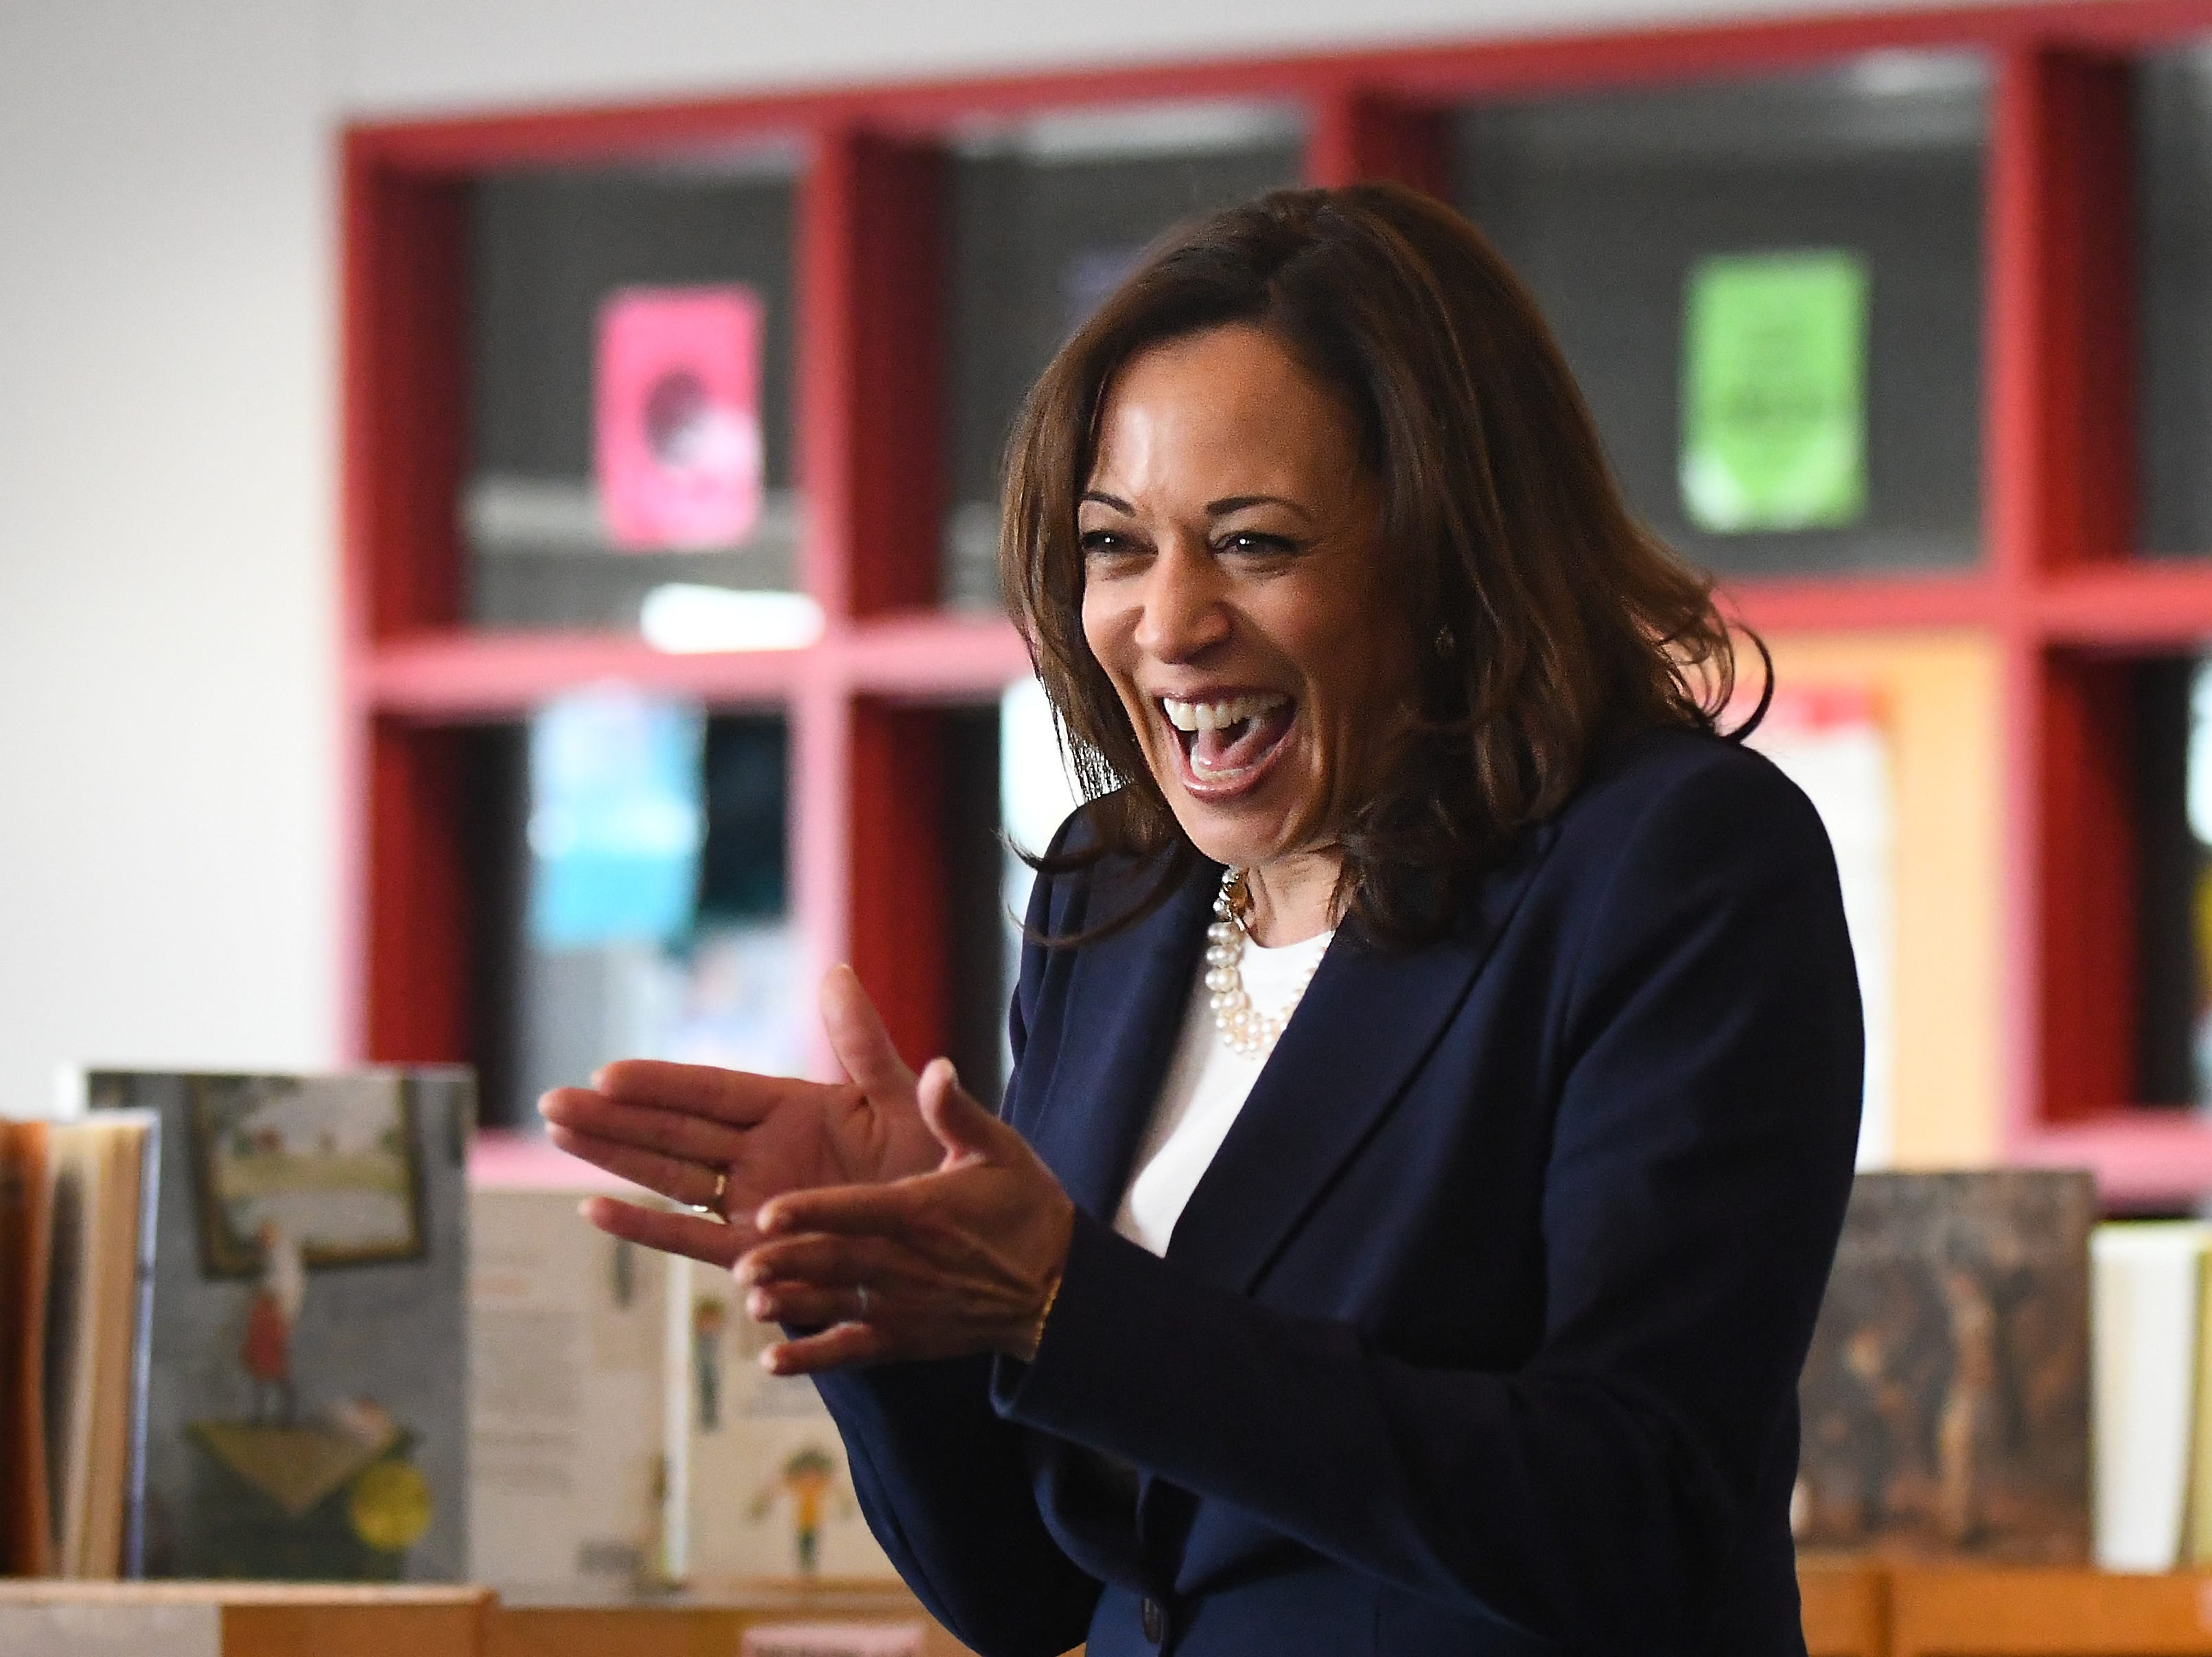 U.S. Senator Kamala Harris arrives to about a hundred cheering 4th graders at Miller Elementary School.